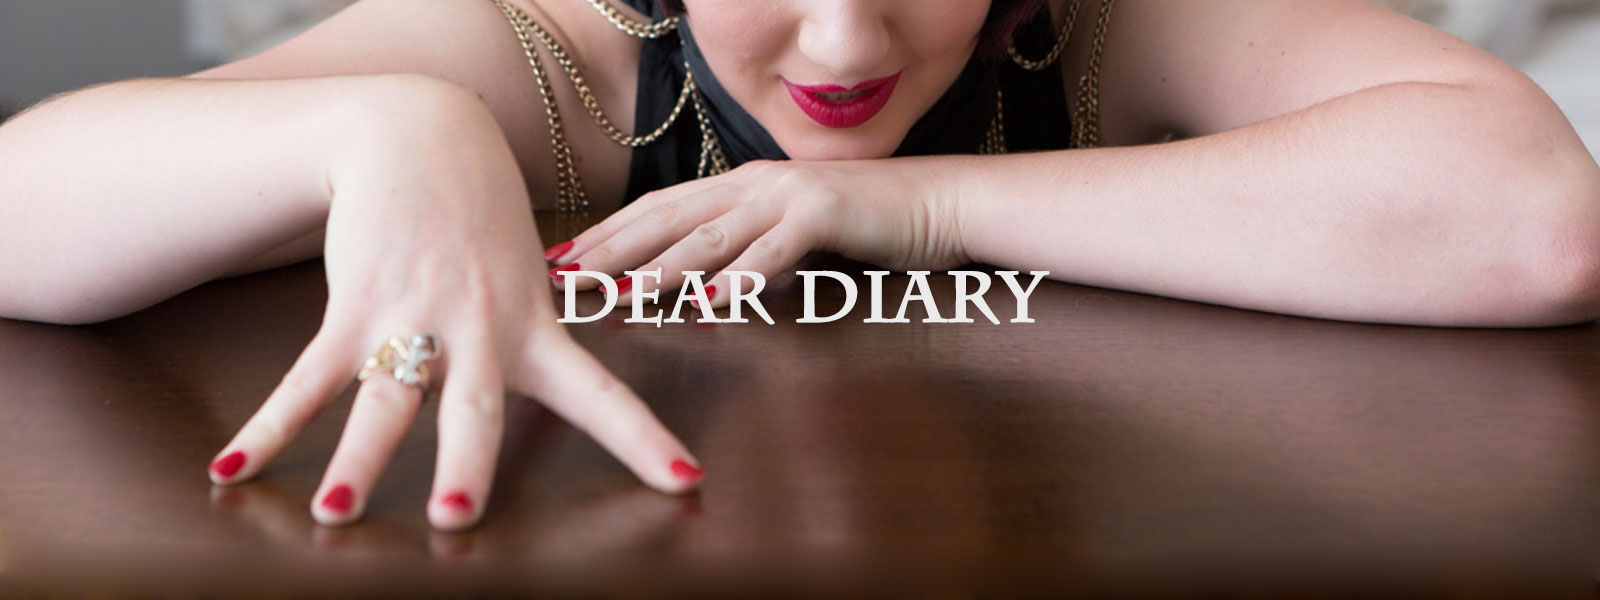 Miss Penelope Dreadful Blog Dear Diary